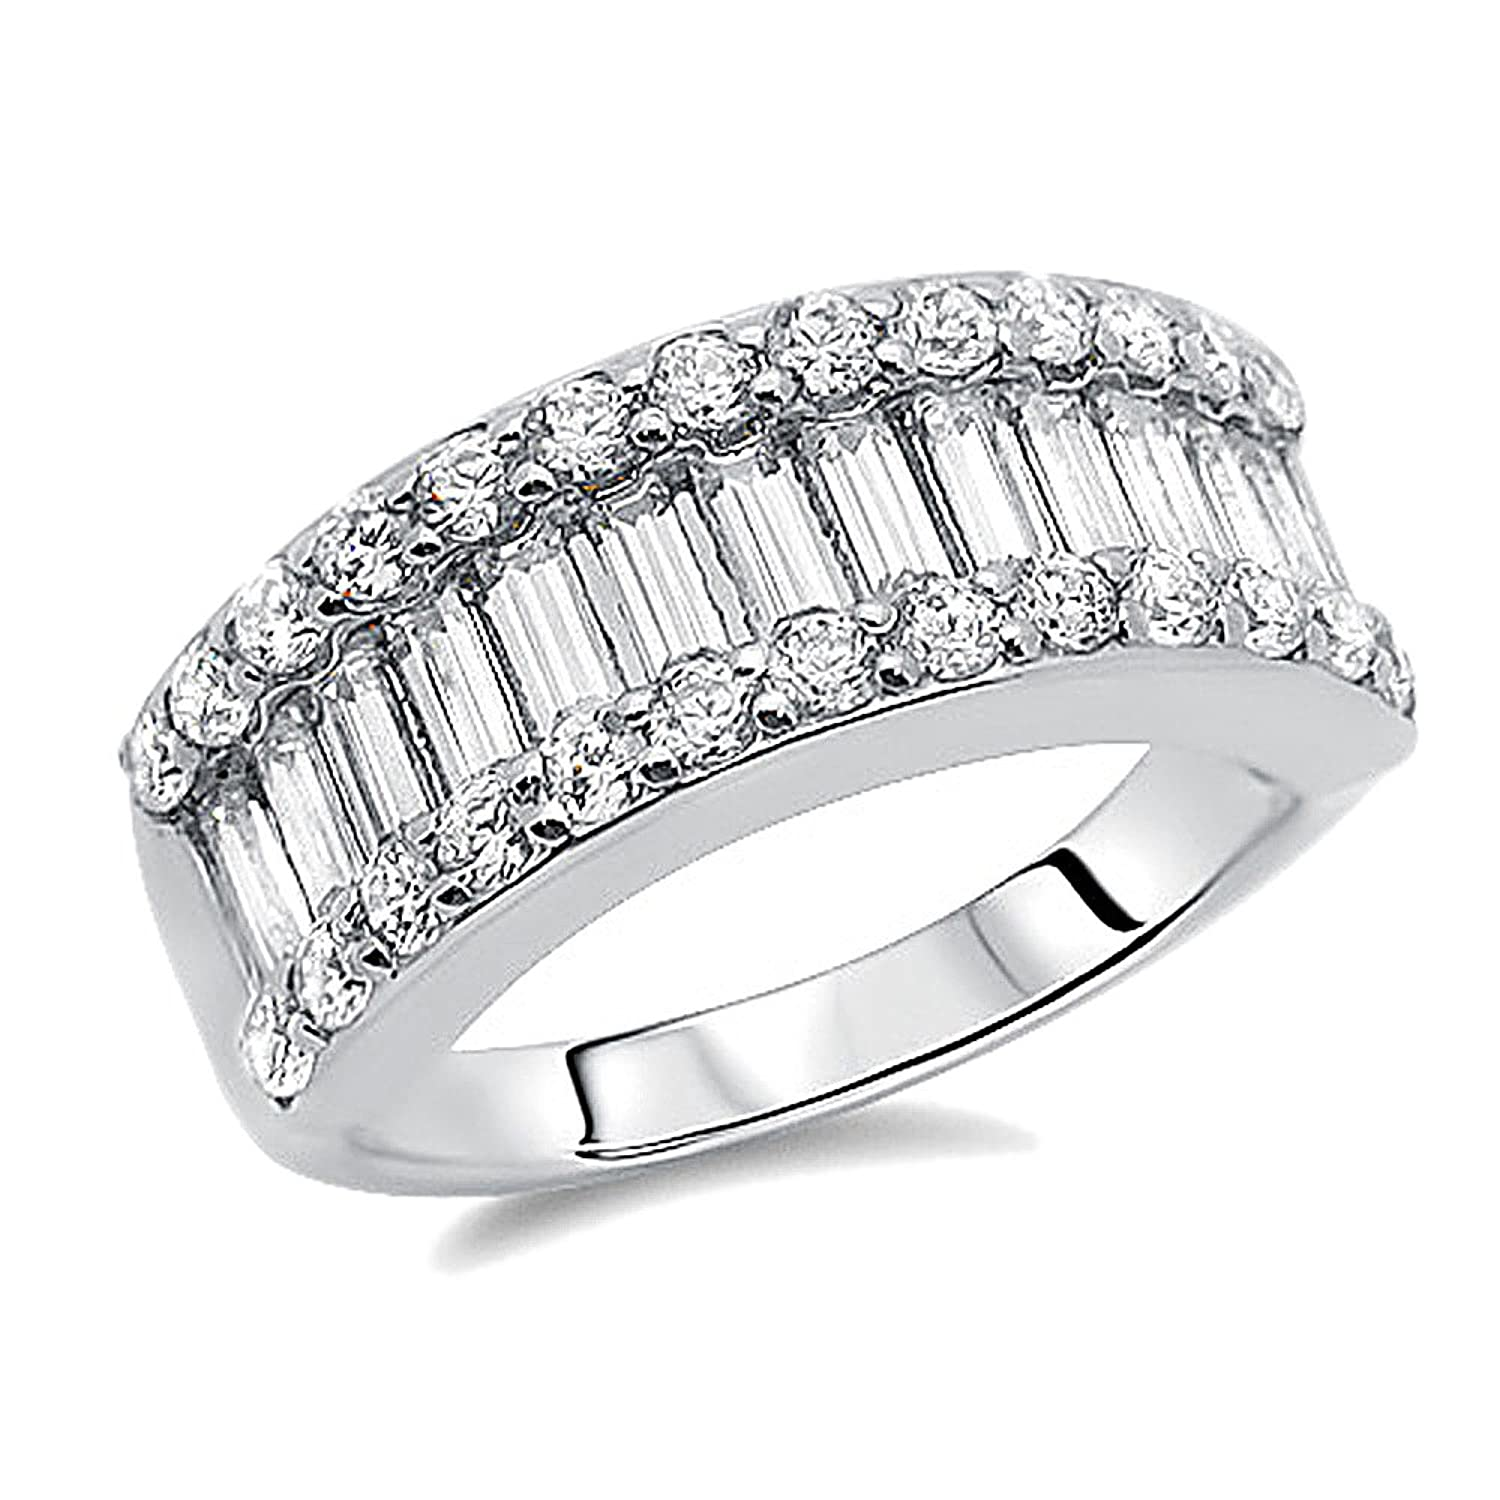 white and rings diamonds product wedding round band gold davies edwards baguette diamond